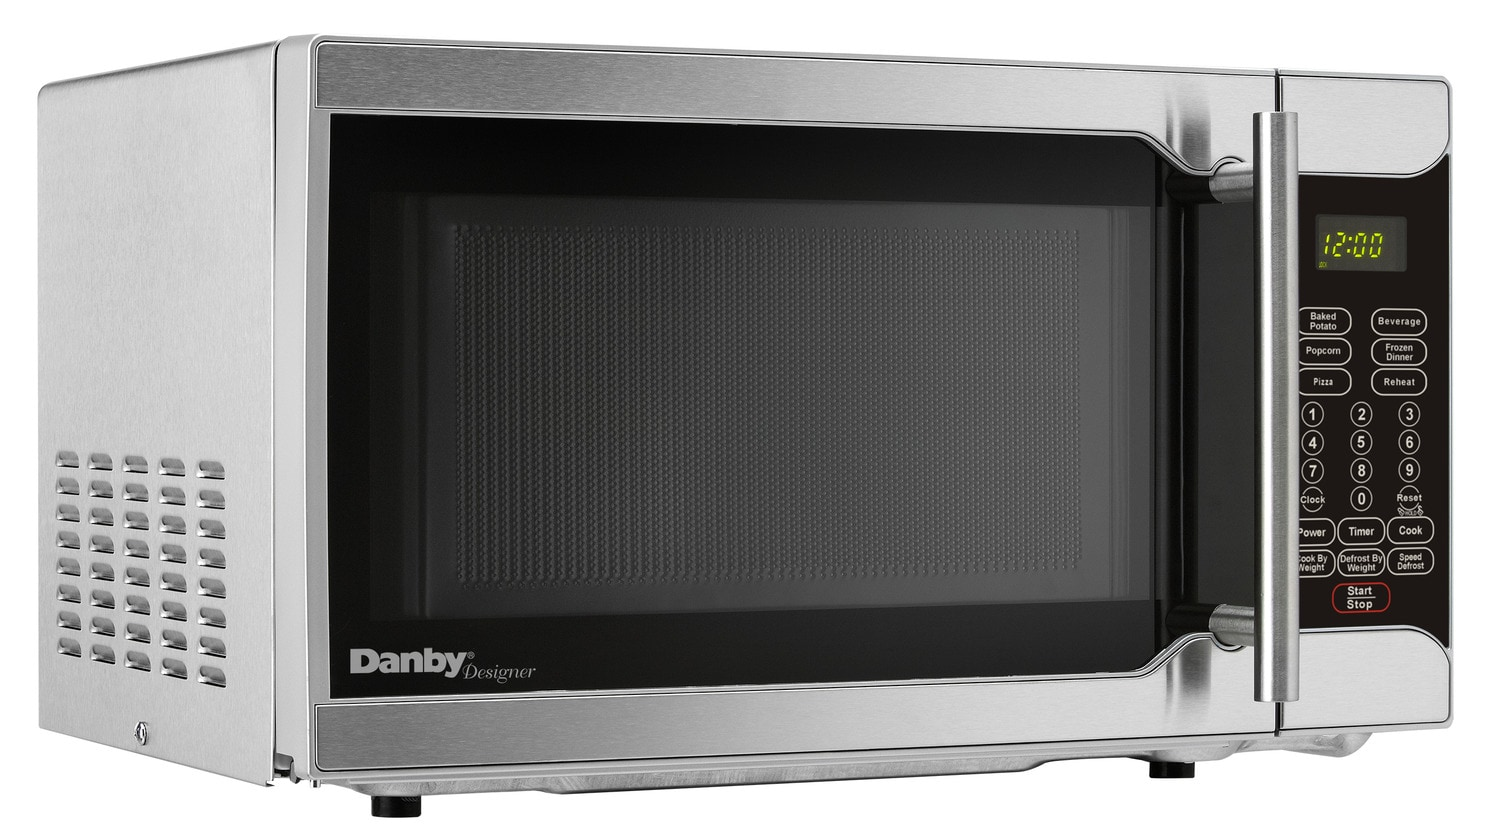 Danby Stainless Steel Countertop Microwave (0.7 Cu. Ft.) - DMW07A2SSDD